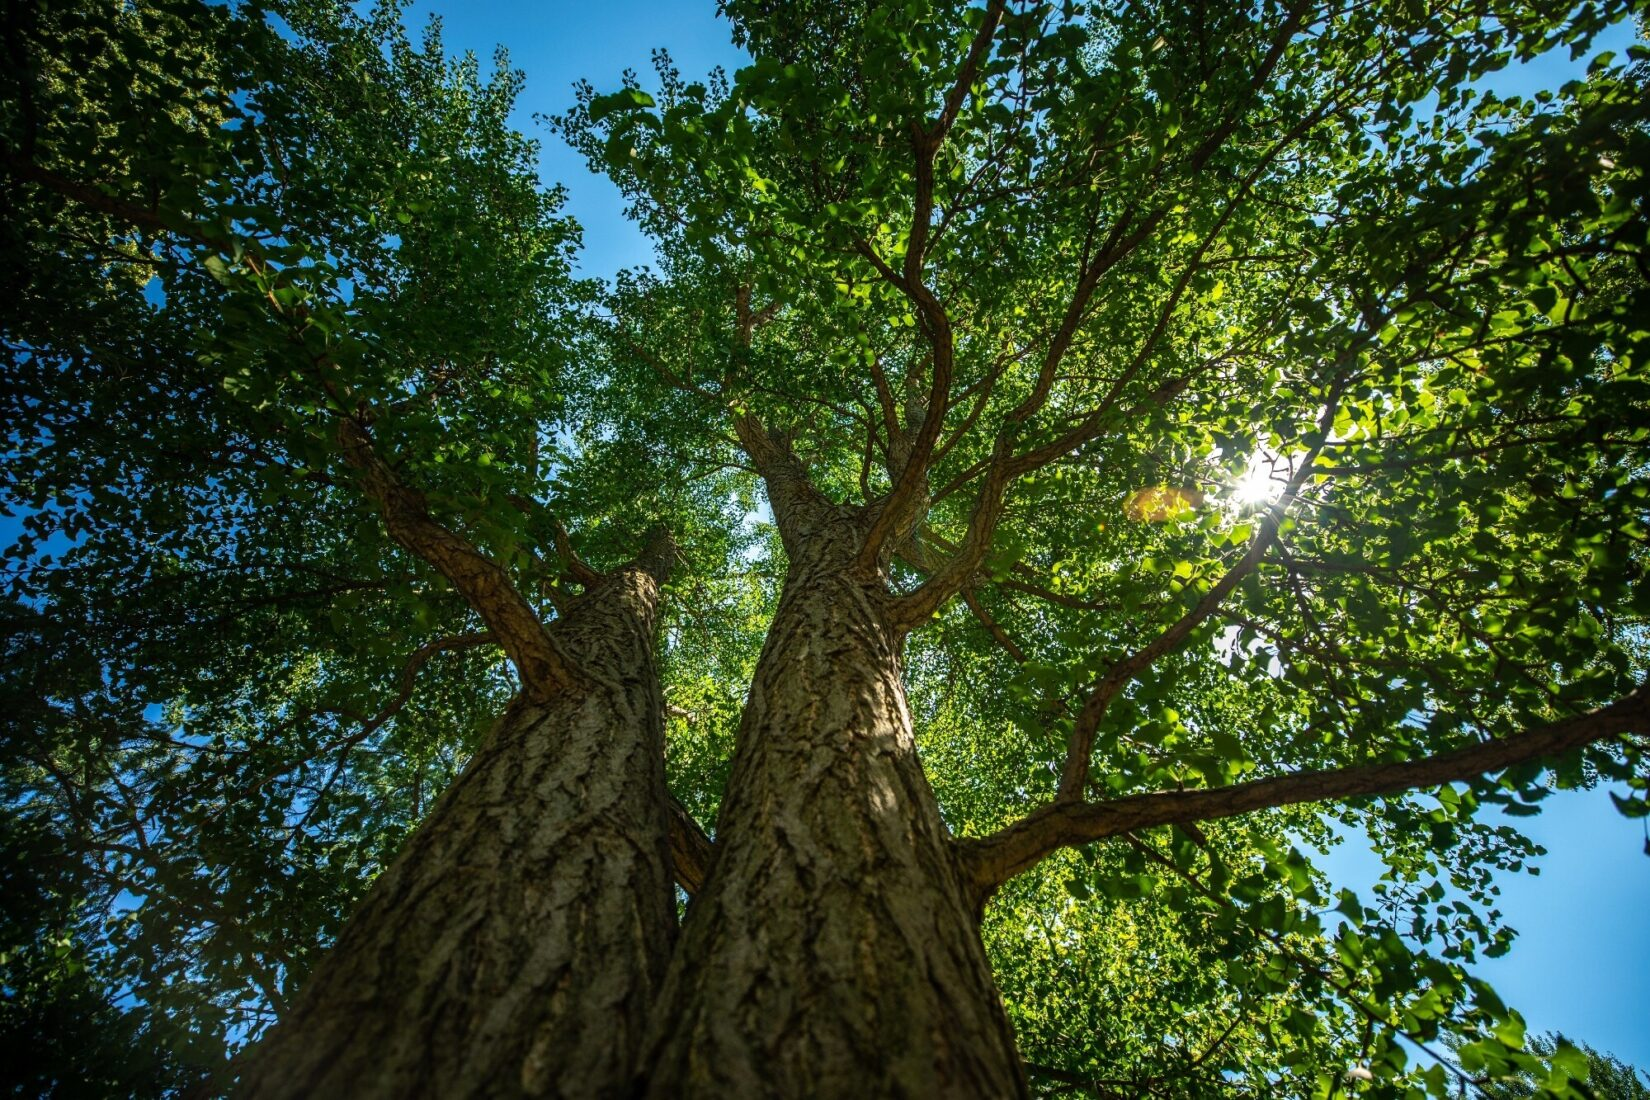 Looking up two tree trunks to see the Sun through green leafs